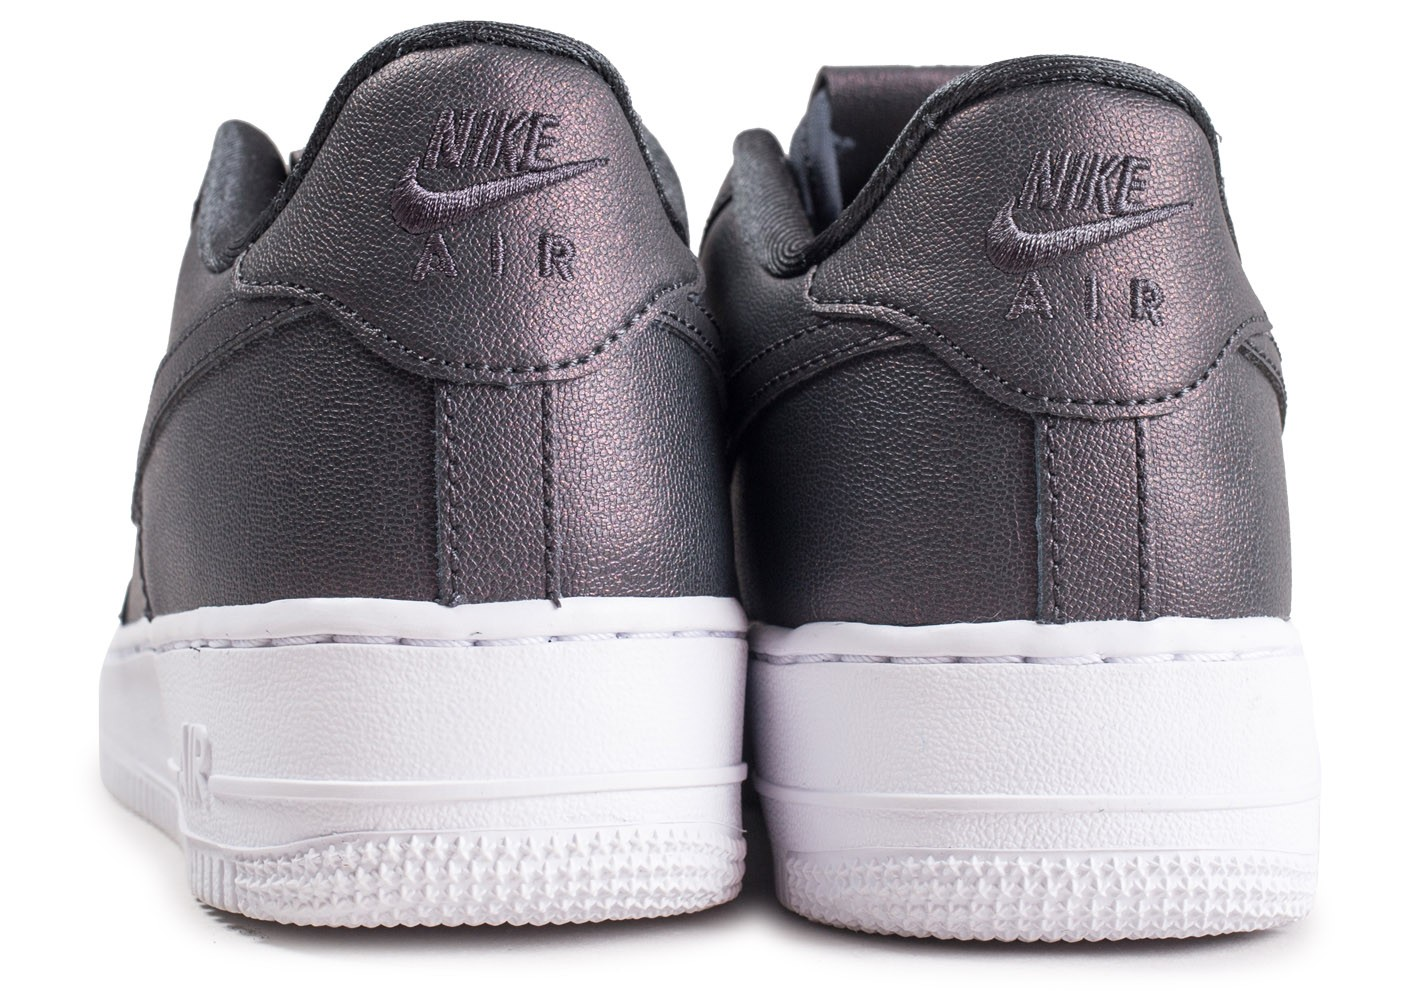 best website 8f448 c73a8 ... Chaussures Nike Air Force 1 SS anthracite junior vue dessous ...